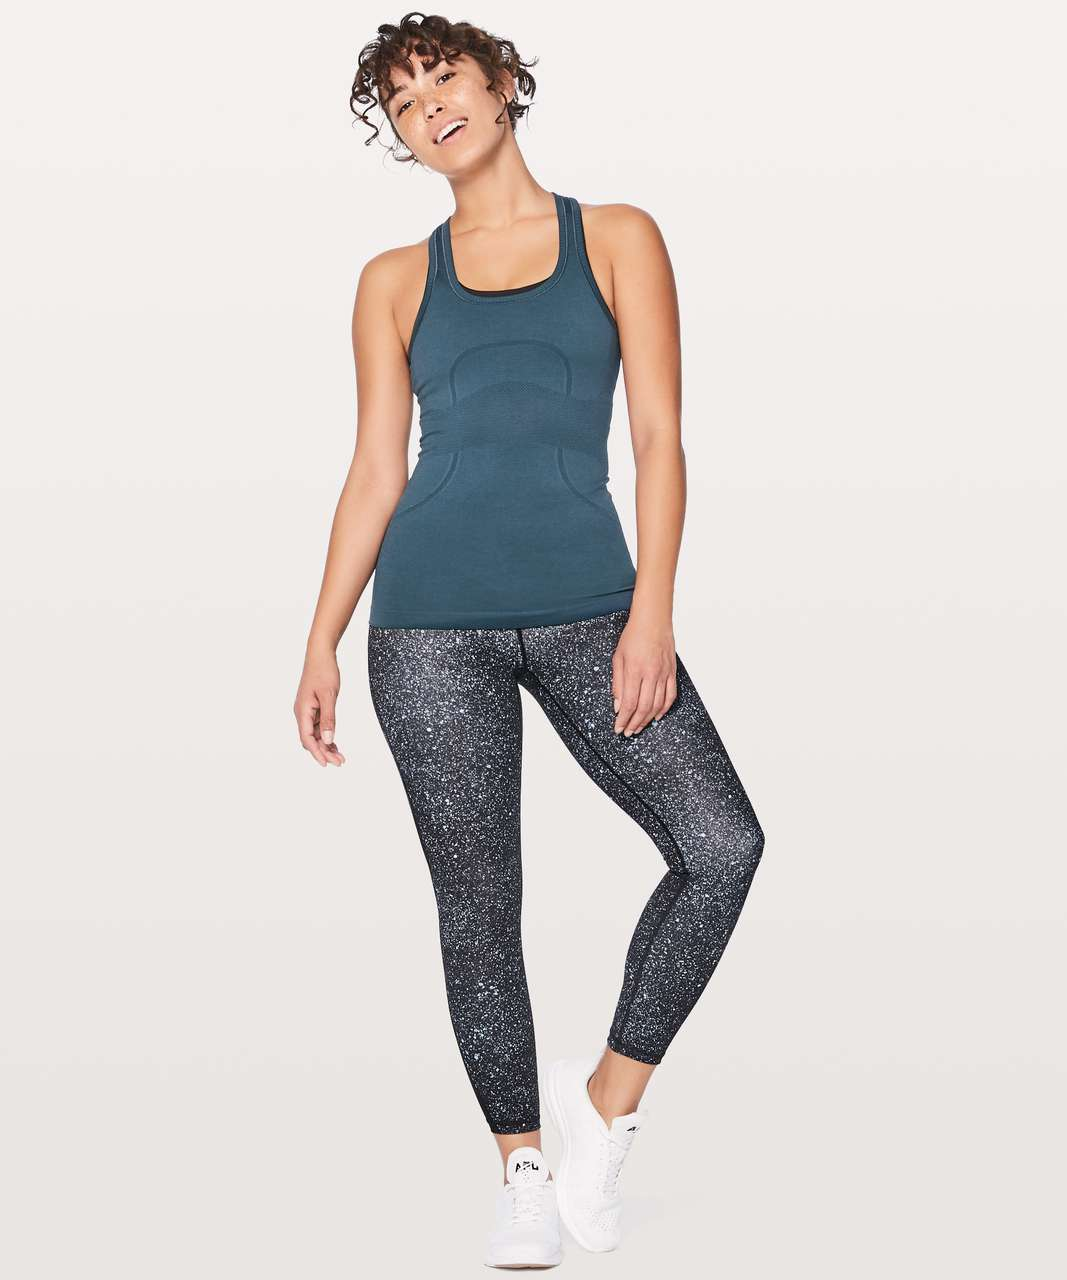 Lululemon Swiftly Tech Racerback - Mineral Blue / Mineral Blue